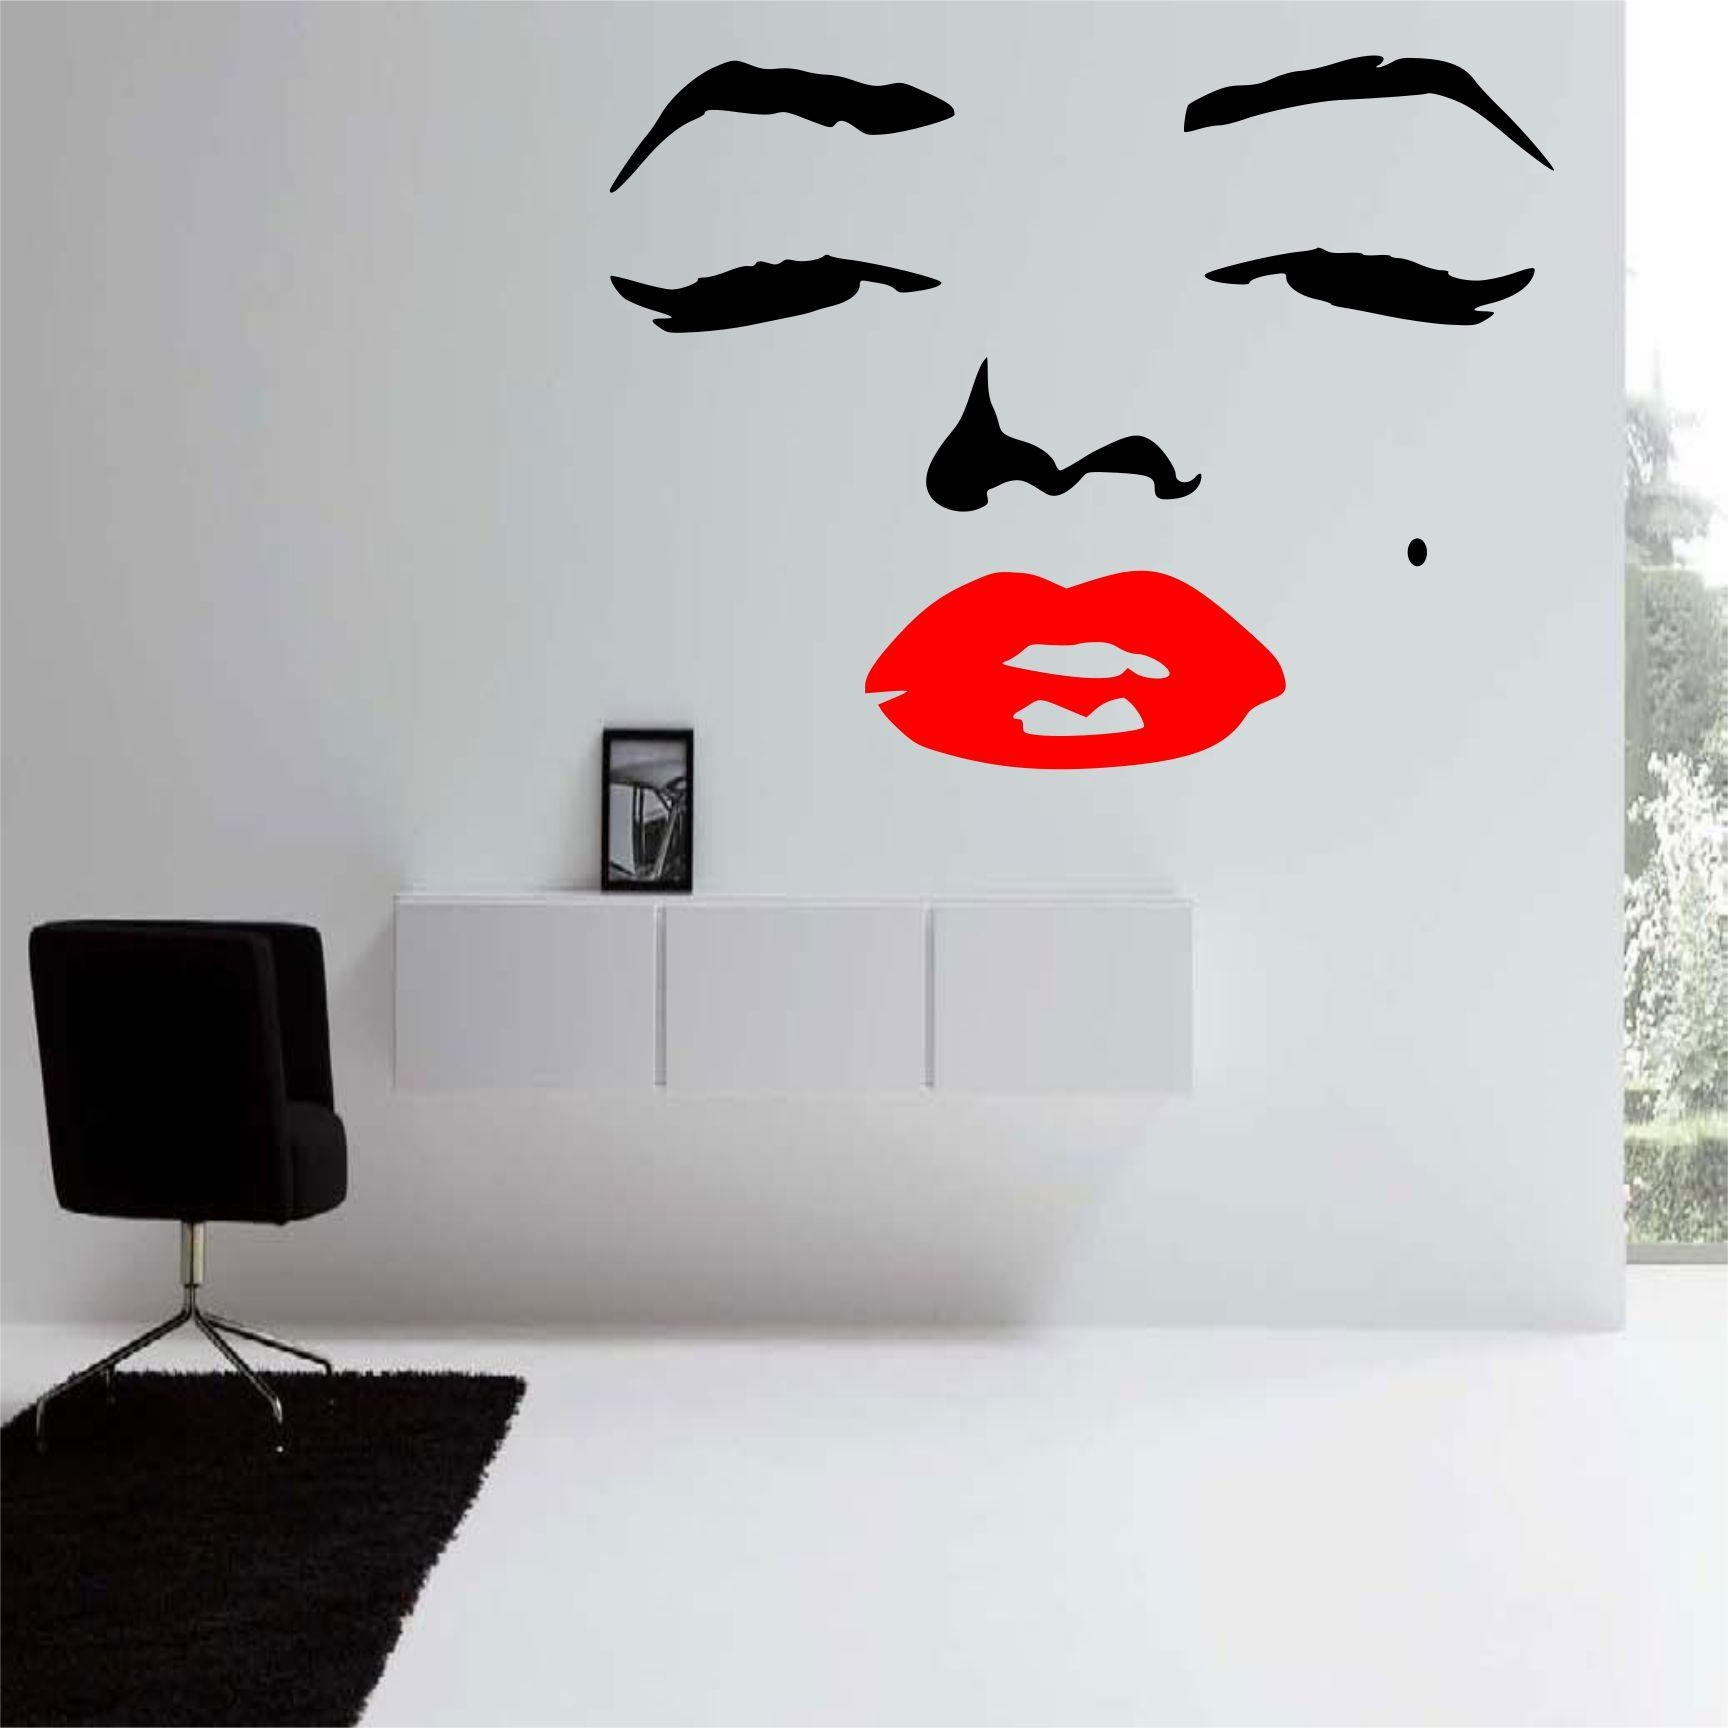 34 Marilyn Monroe Wall Decals, Marilyn Monroe 2 Wall Decal Norma Throughout Marilyn Monroe Wall Art (View 15 of 20)